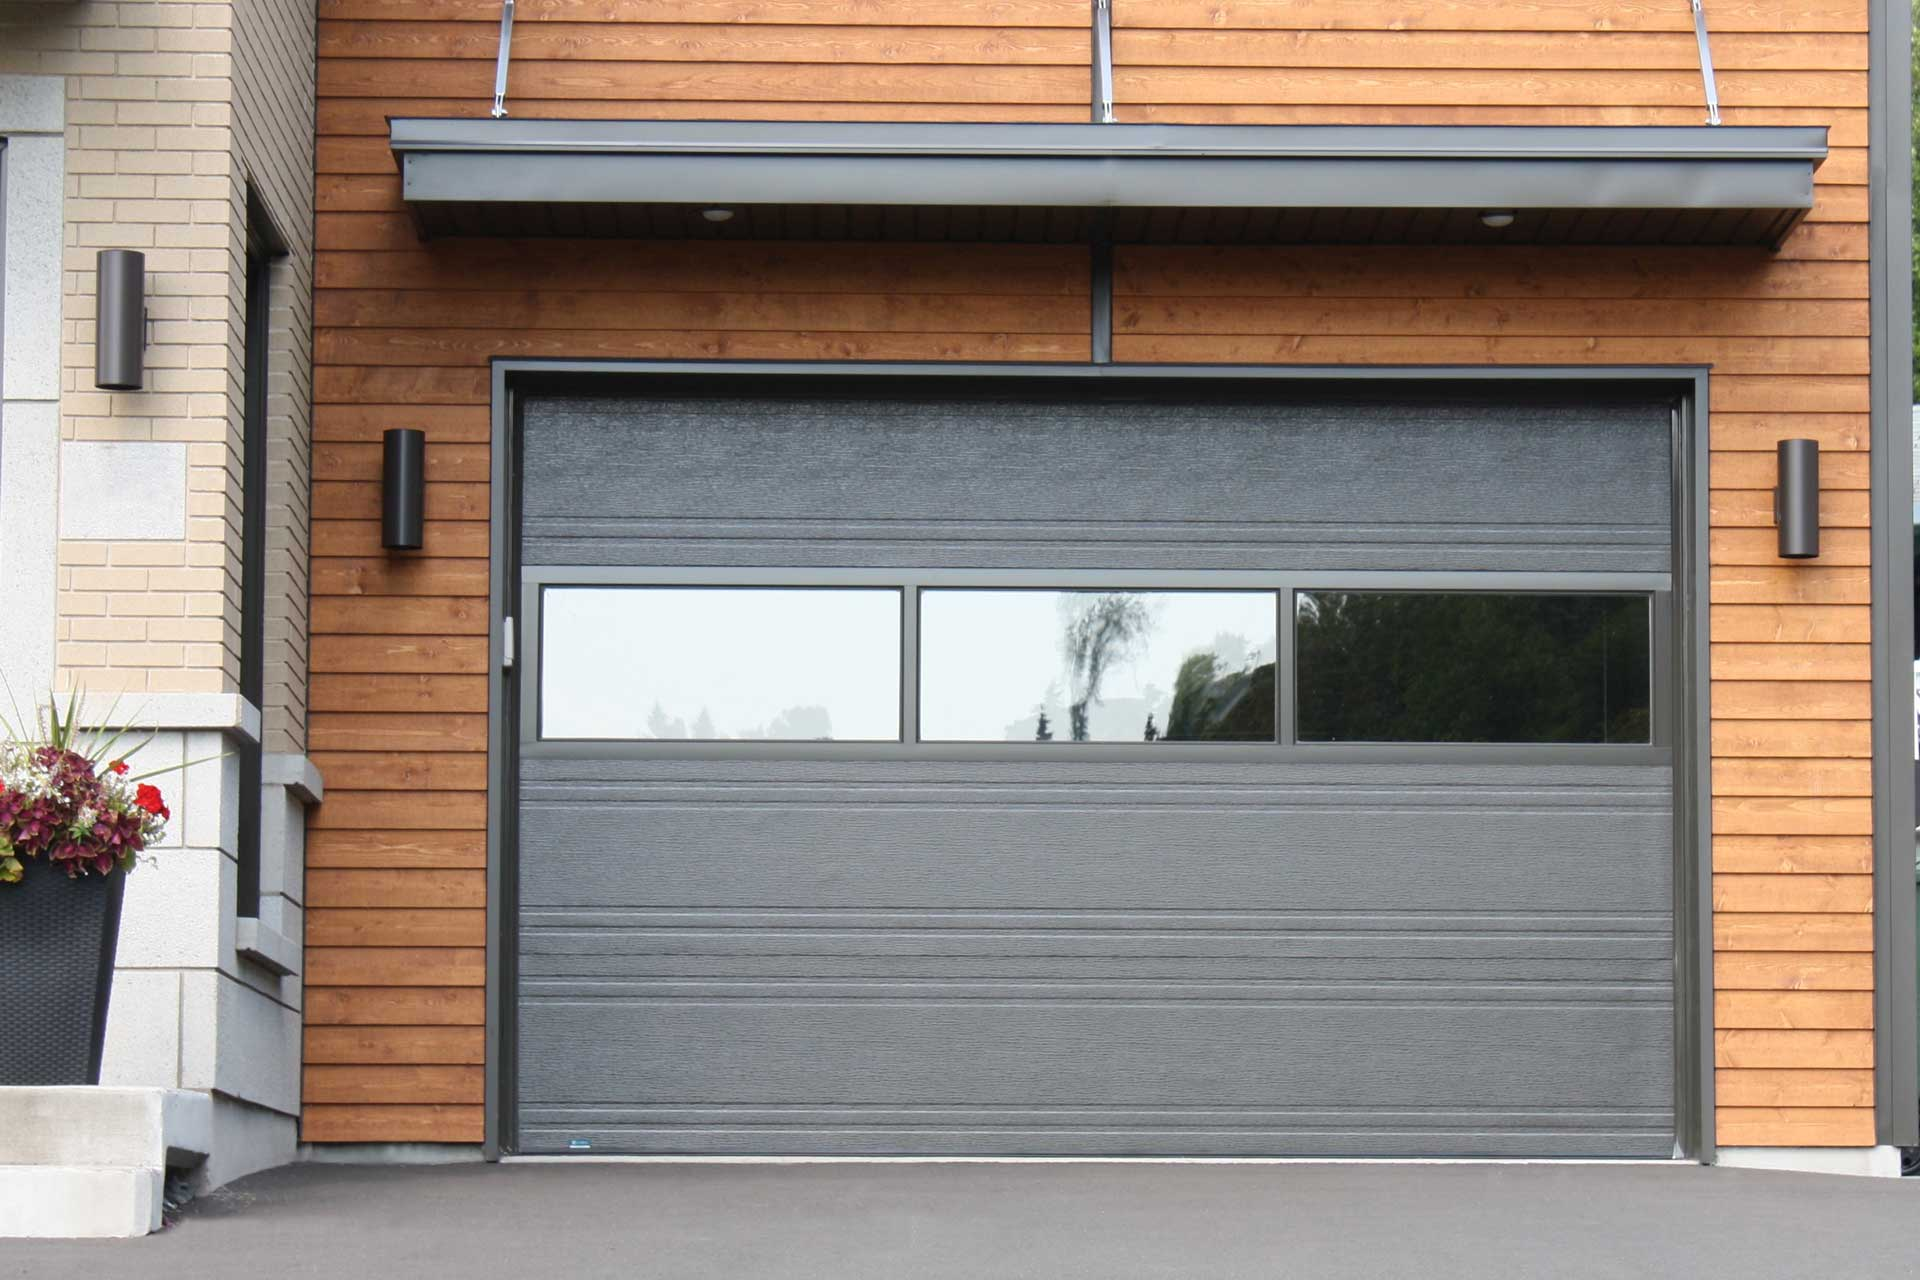 Pro moderne portes isolex porte de garage r sidentielle for Porte de garage en promotion